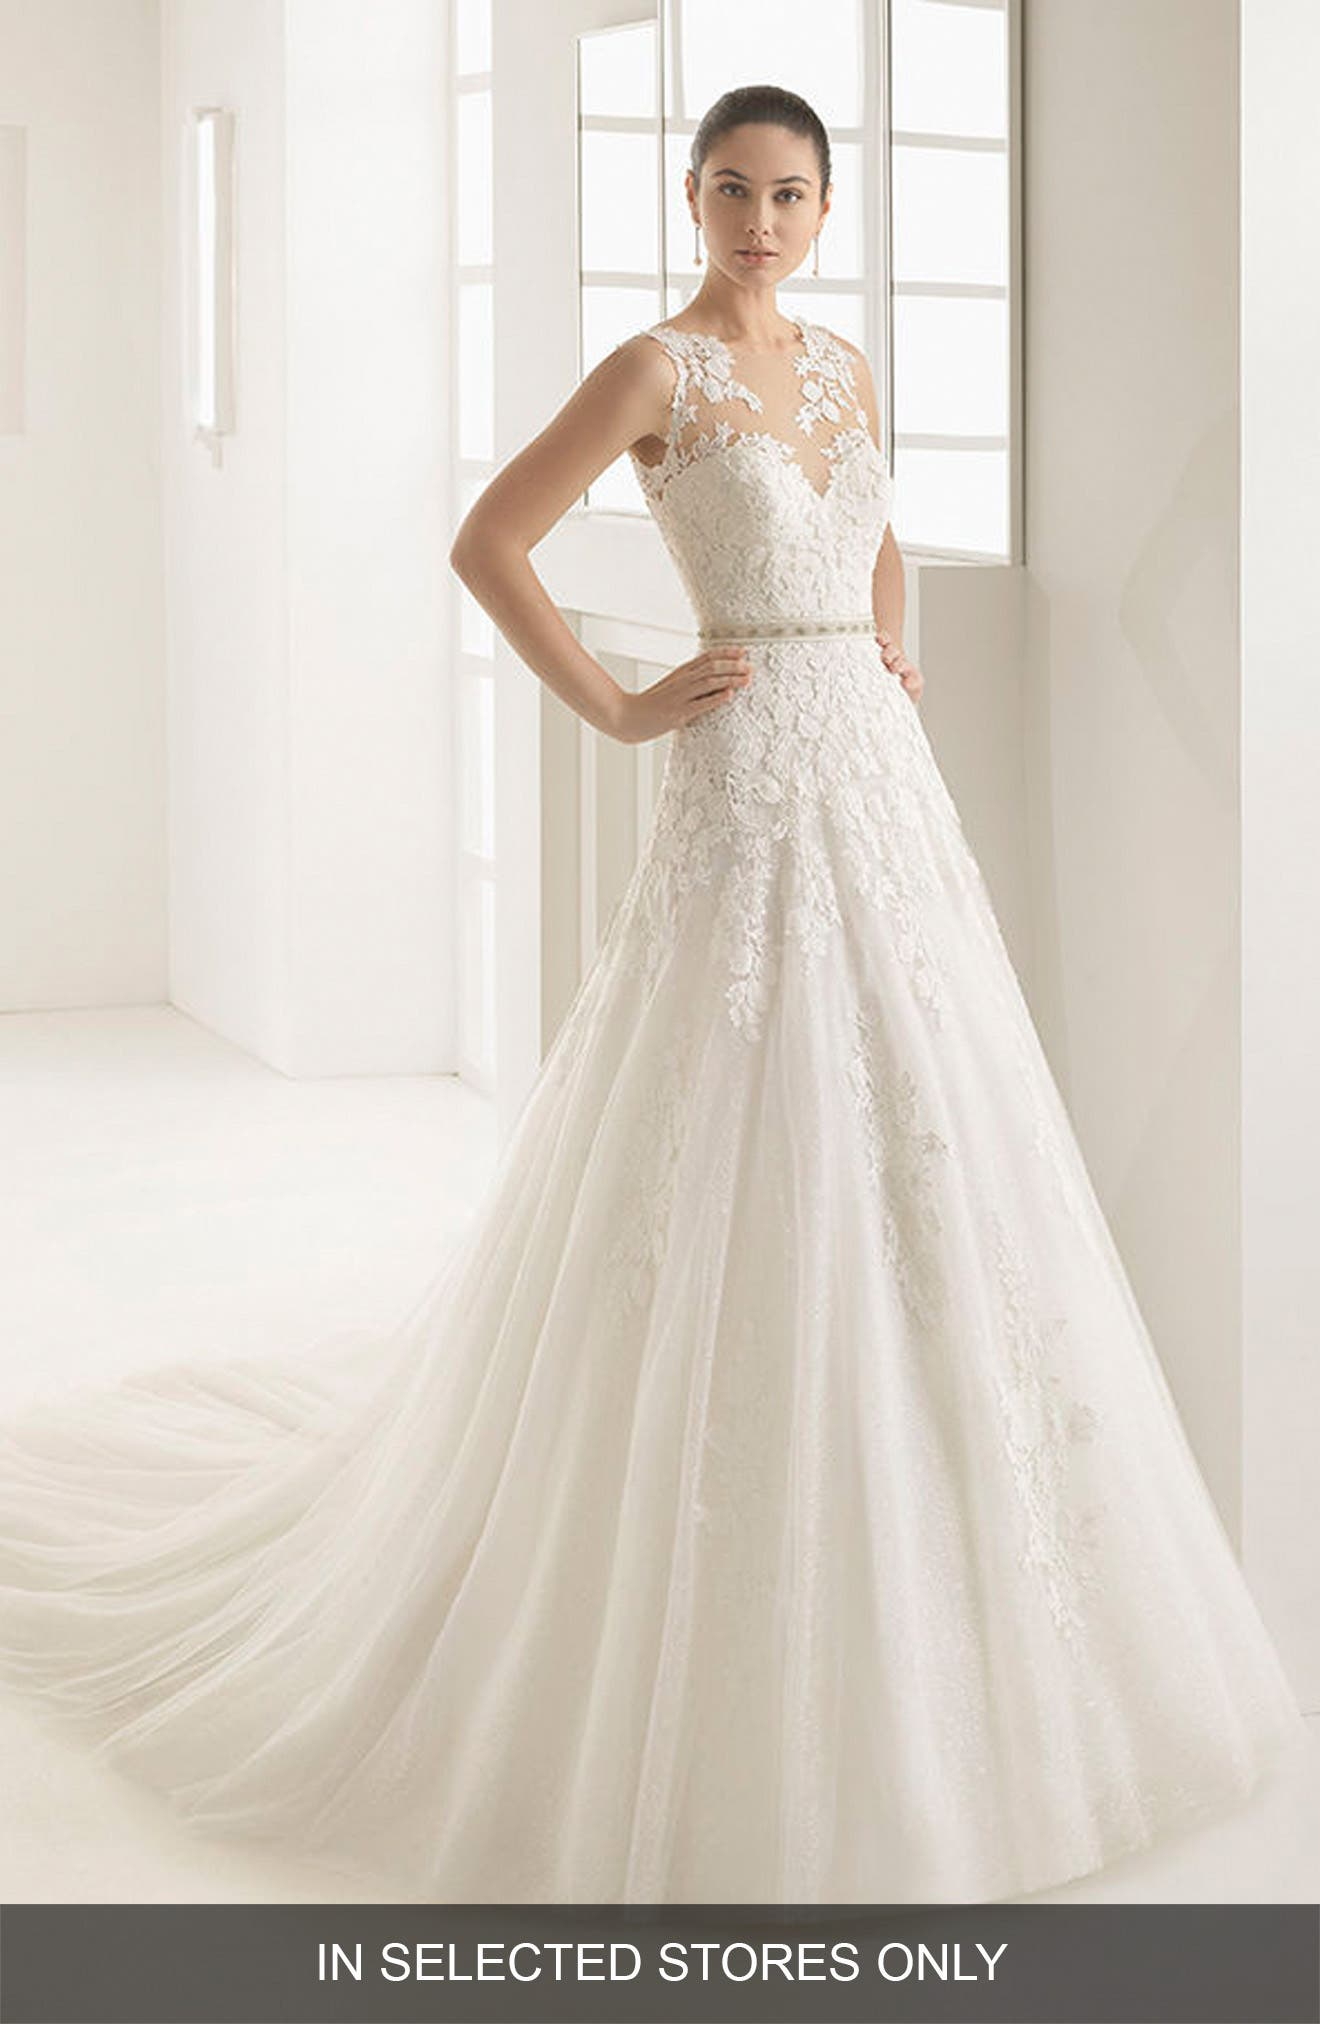 Oda Sleeveless Lace & Tulle Gown,                             Main thumbnail 1, color,                             250